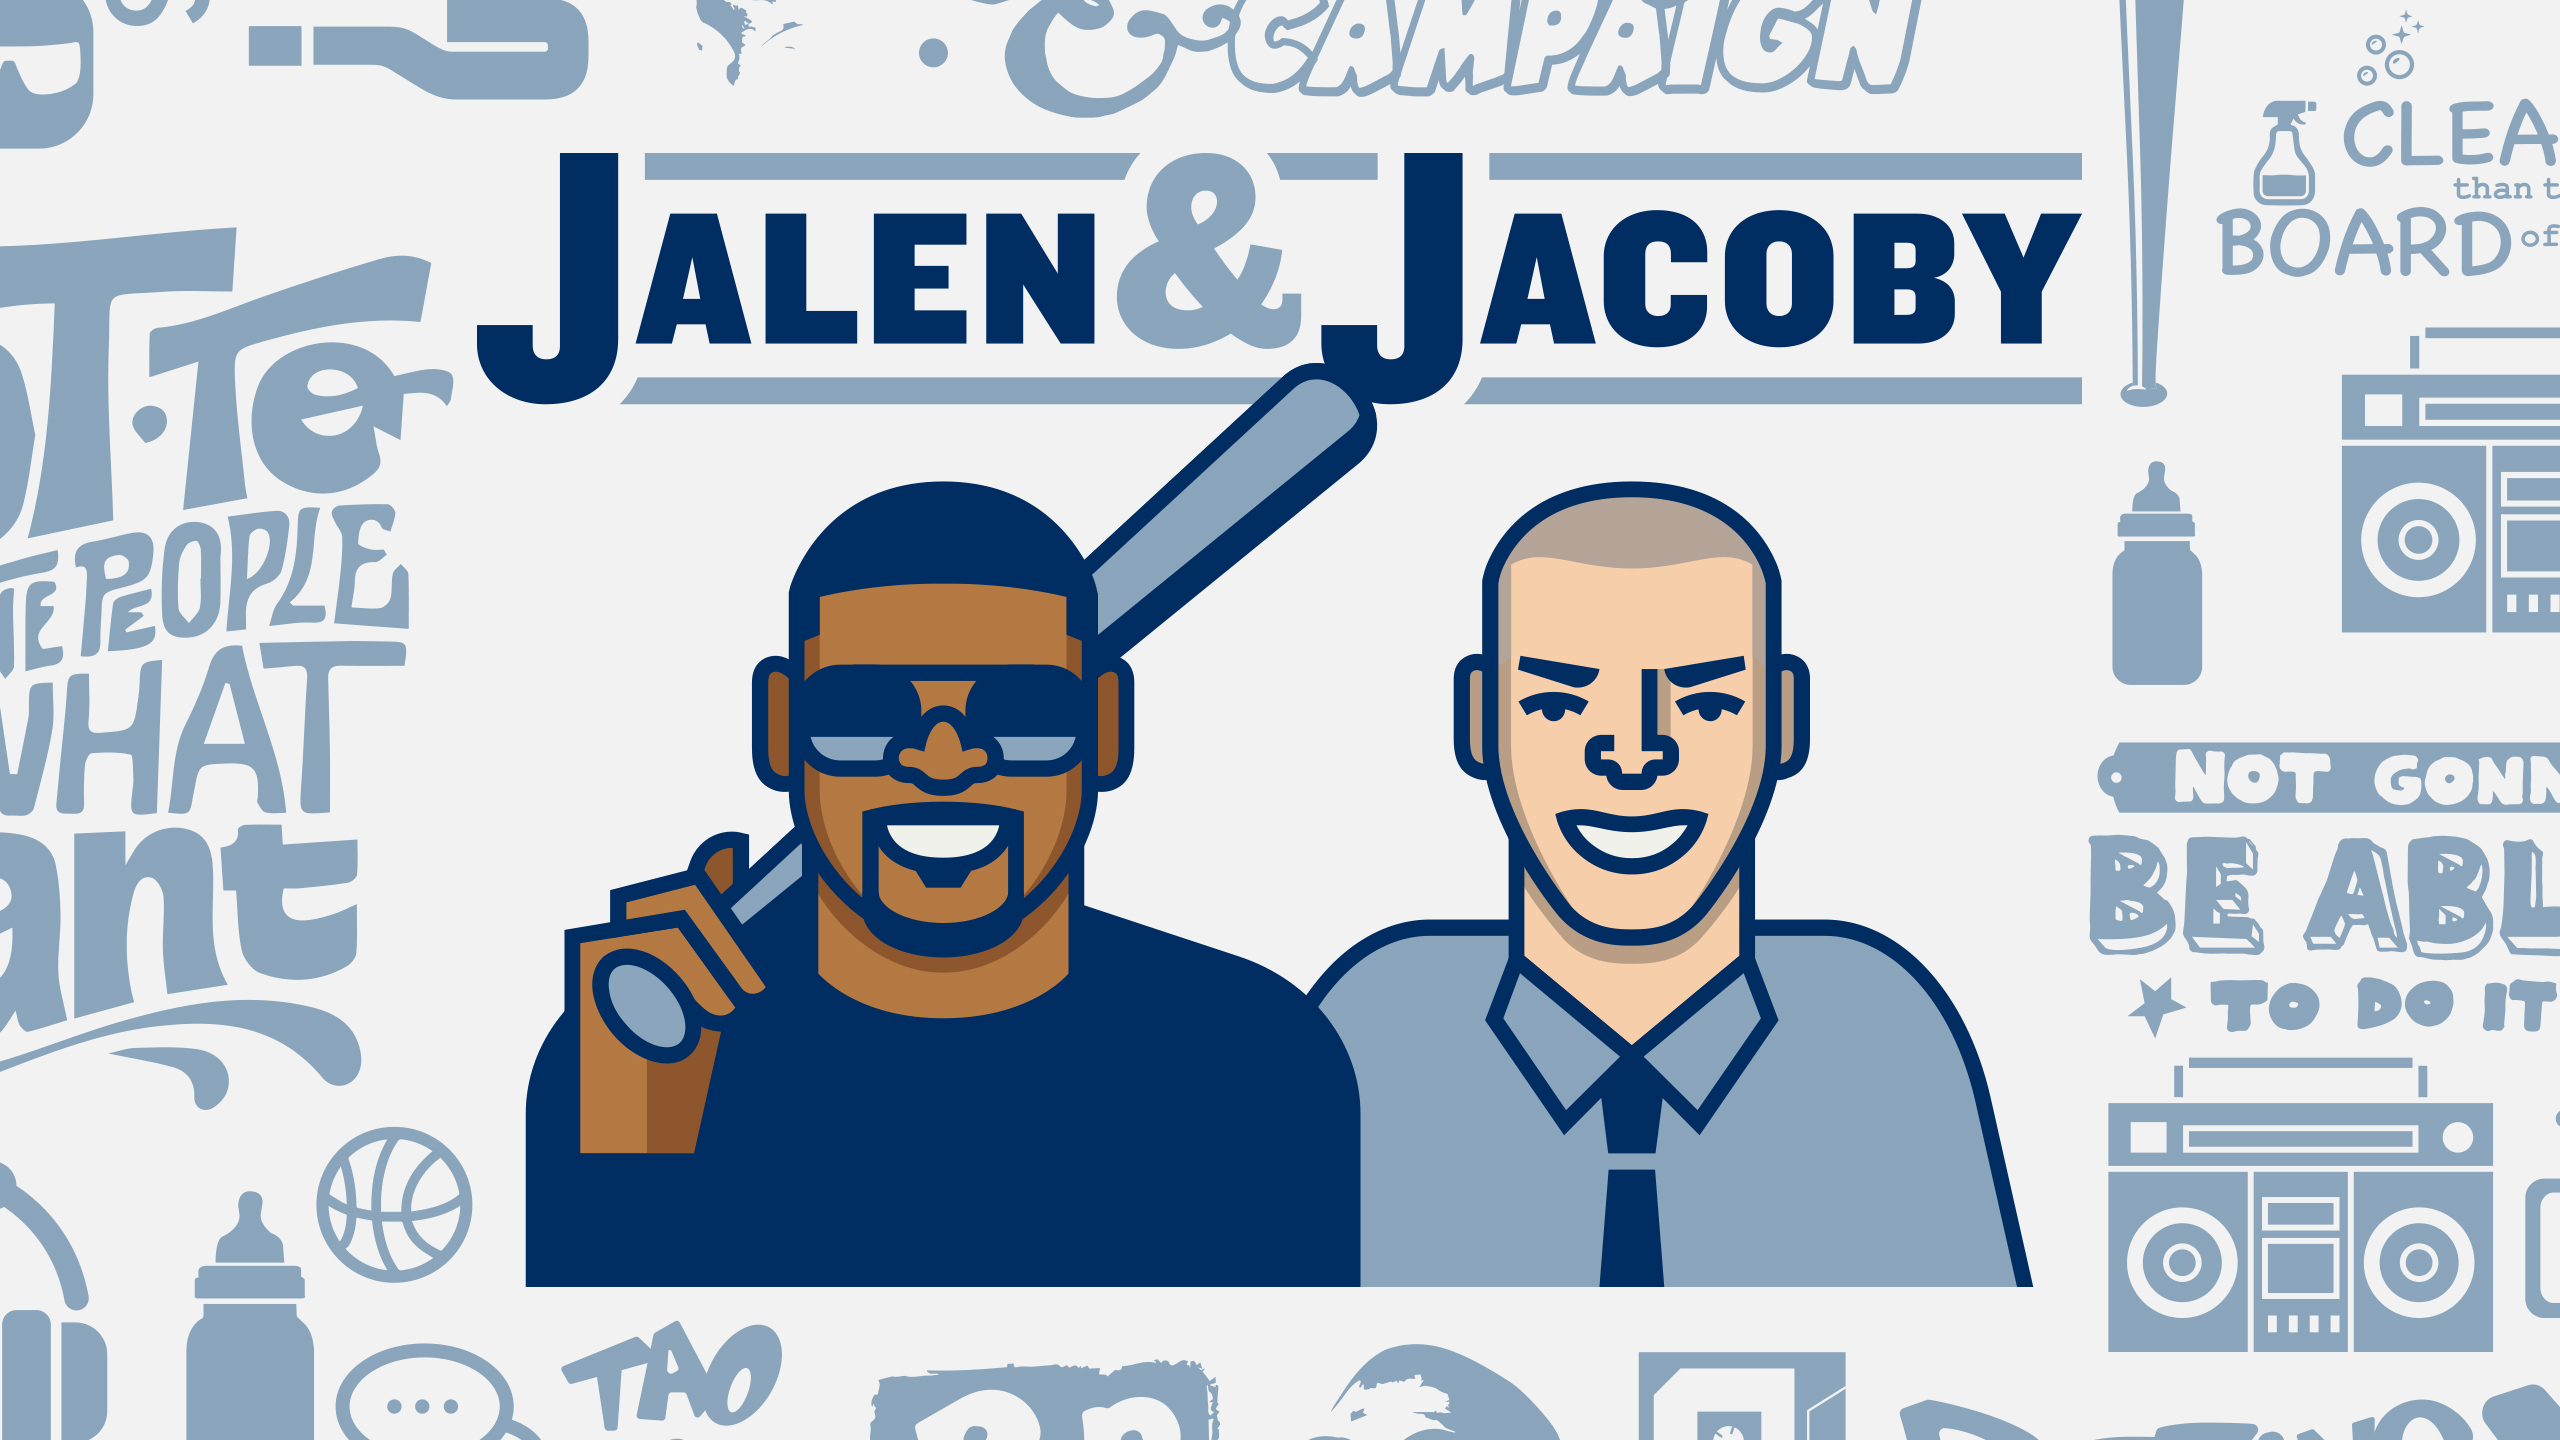 Wed, 2/20 - Jalen & Jacoby